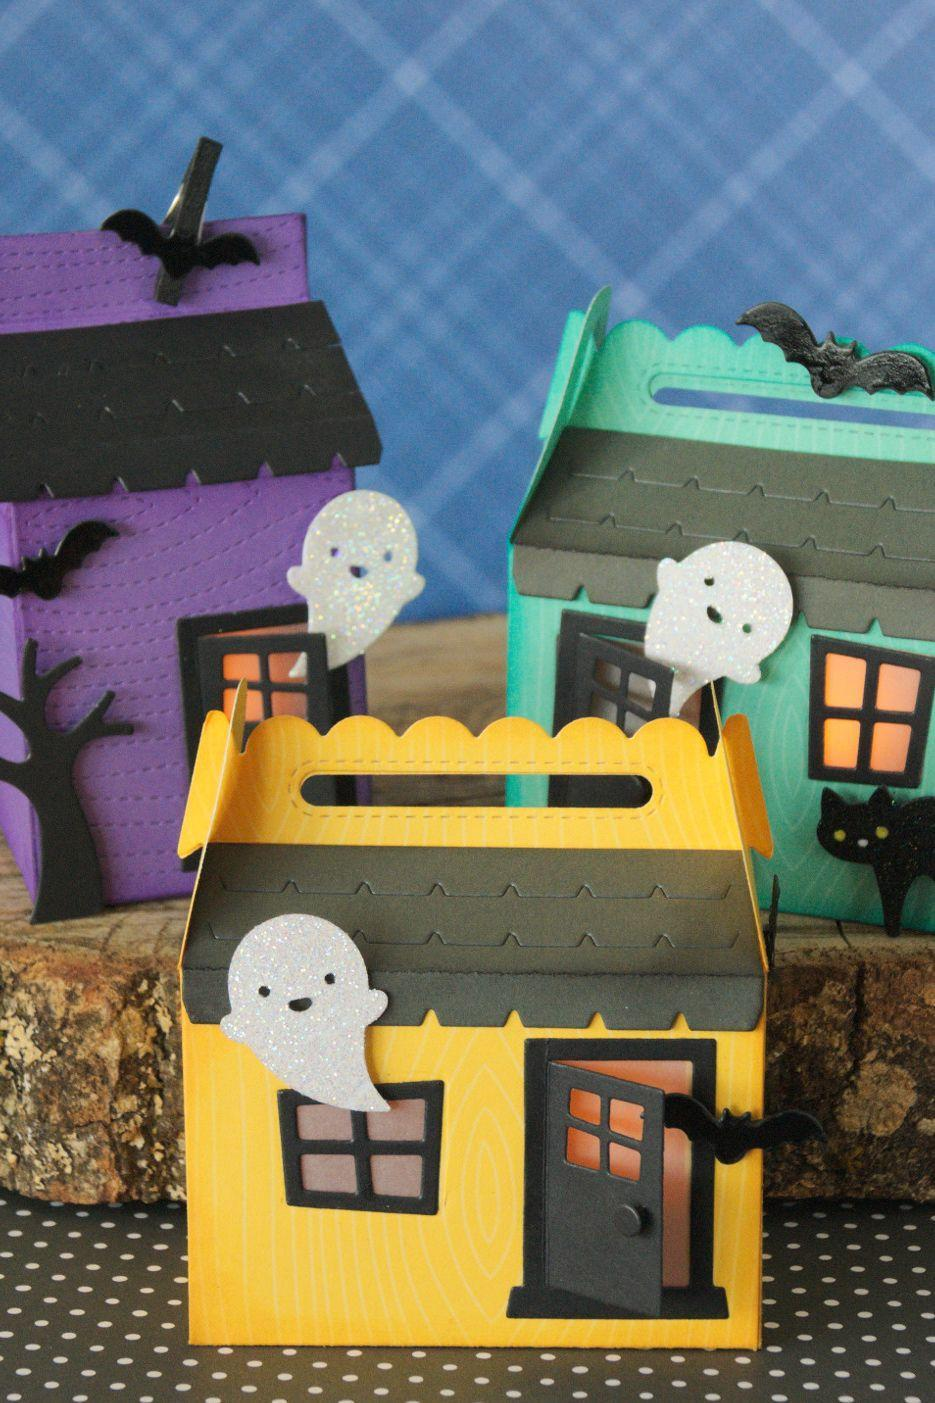 "<p>Paper treat boxes are the perfect base for kids to dream up and decorate their own haunted houses. Make a set and then display them on your mantel (like you would a Christmas village). </p><p><strong>Get the tutorial at <a href=""https://blog.lawnfawn.com/2017/08/lawn-fawn-intro-scalloped-treat-box/"" rel=""nofollow noopener"" target=""_blank"" data-ylk=""slk:Lawn Fawn"" class=""link rapid-noclick-resp"">Lawn Fawn</a>.</strong></p><p><a class=""link rapid-noclick-resp"" href=""https://www.amazon.com/Fun-Express-Treat-Boxes-Dozen/dp/B007BD9KOQ/?tag=syn-yahoo-20&ascsubtag=%5Bartid%7C10050.g.4950%5Bsrc%7Cyahoo-us"" rel=""nofollow noopener"" target=""_blank"" data-ylk=""slk:SHOP TREAT BOXES"">SHOP TREAT BOXES</a></p>"